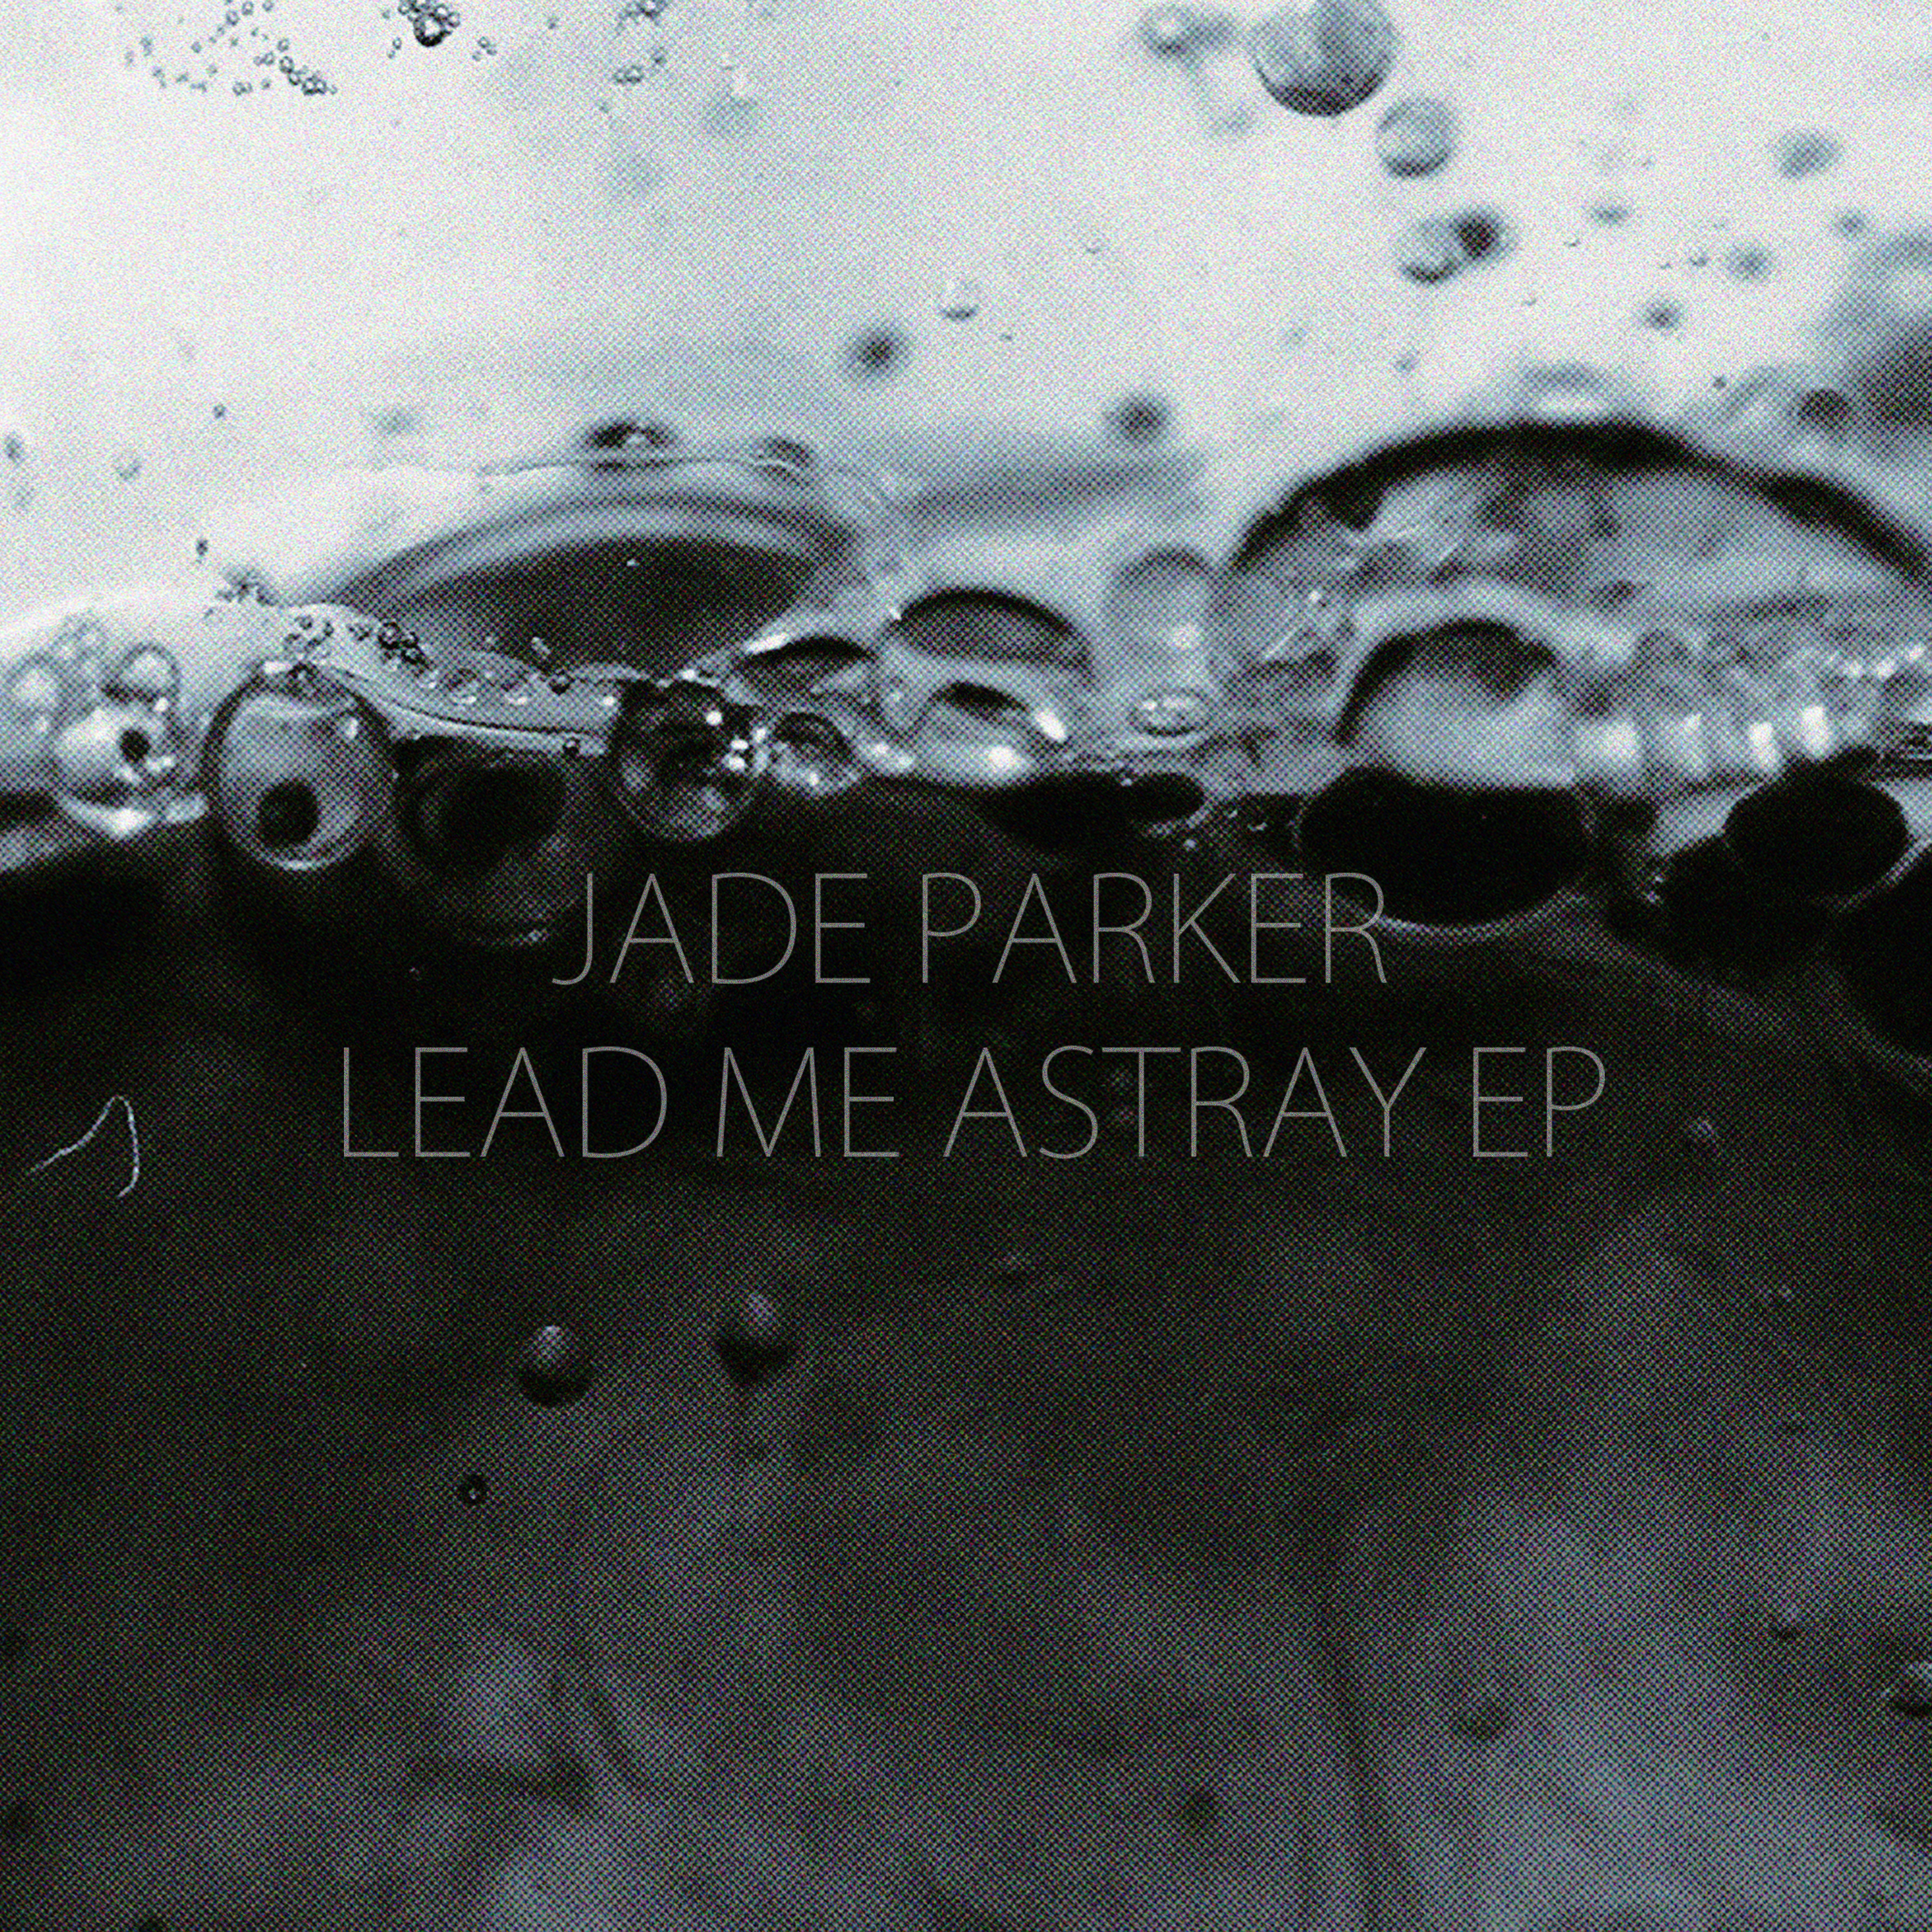 Jade Parker Lead Me Astray